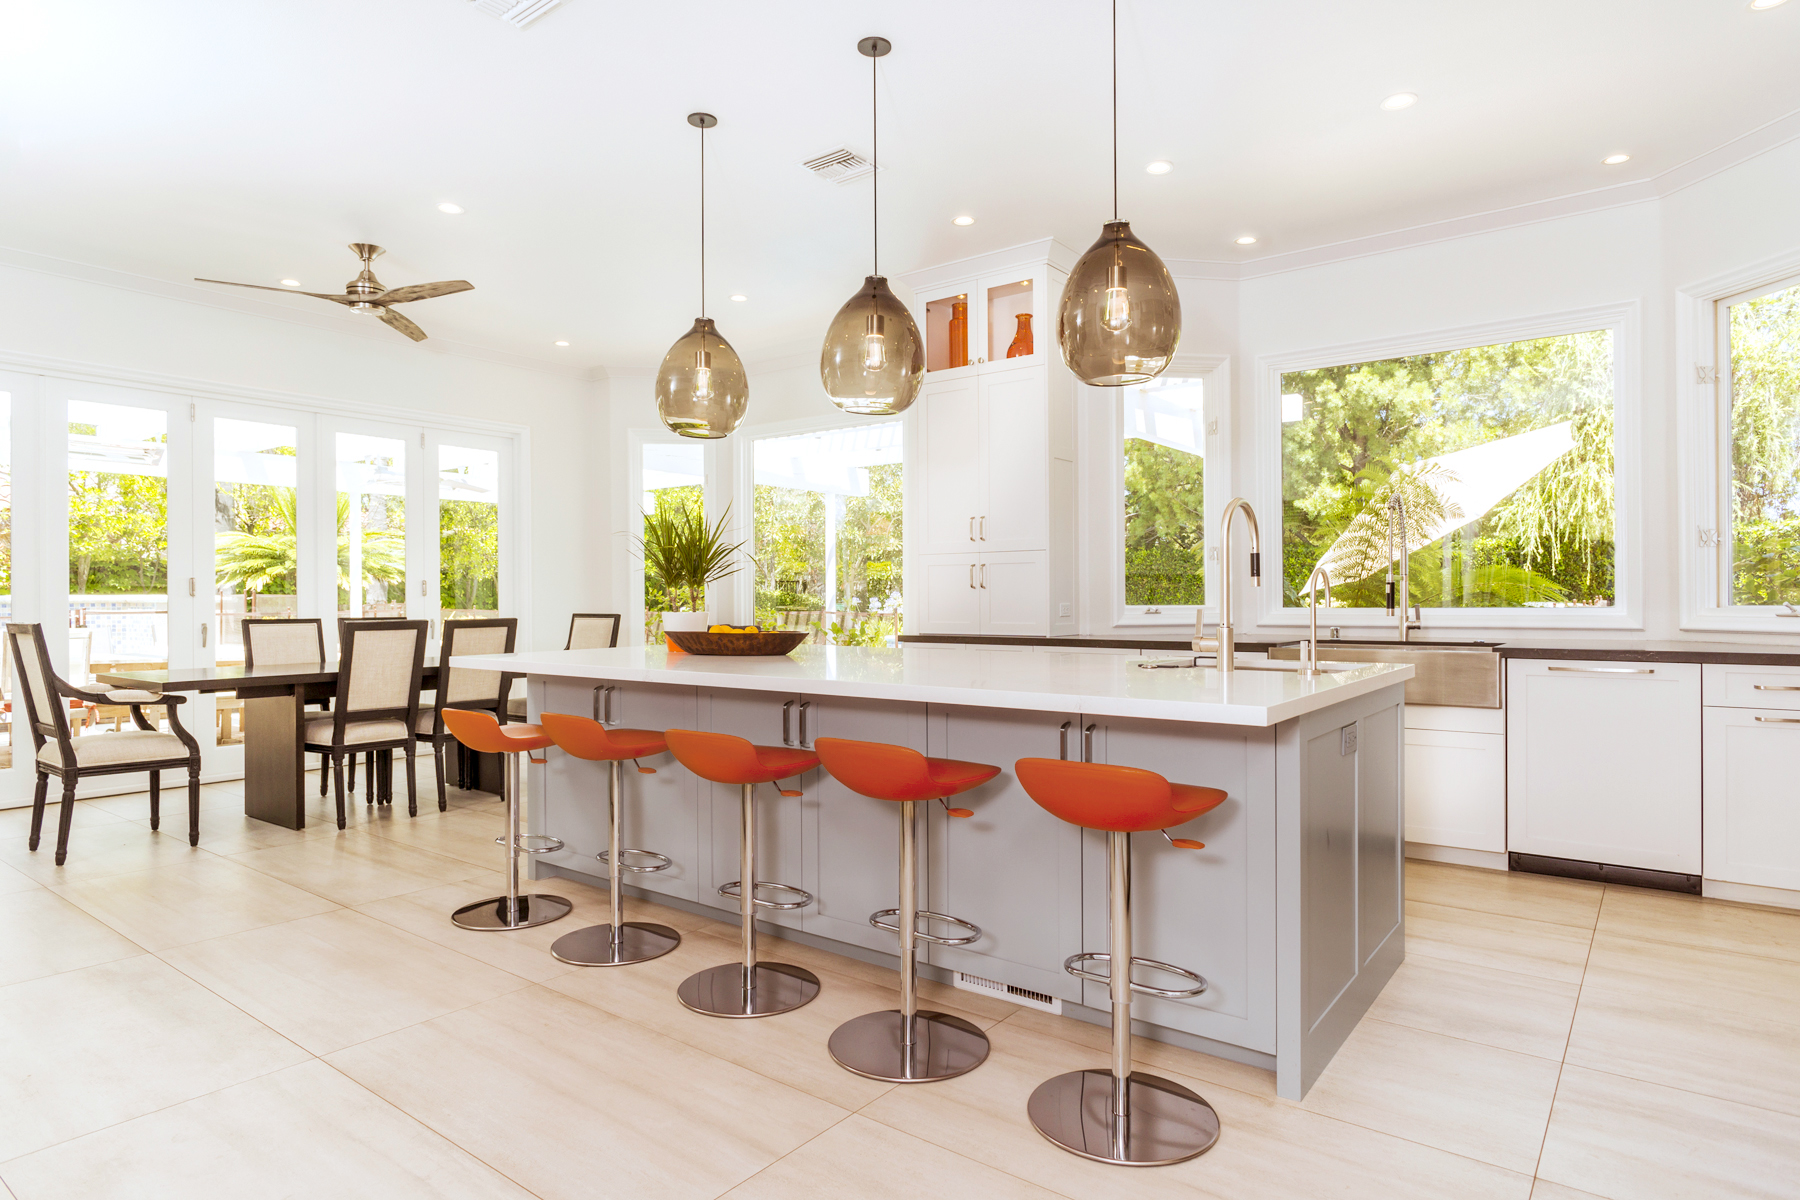 Modern White Shaker Style Kitchen Cabinets & Light Grey Island